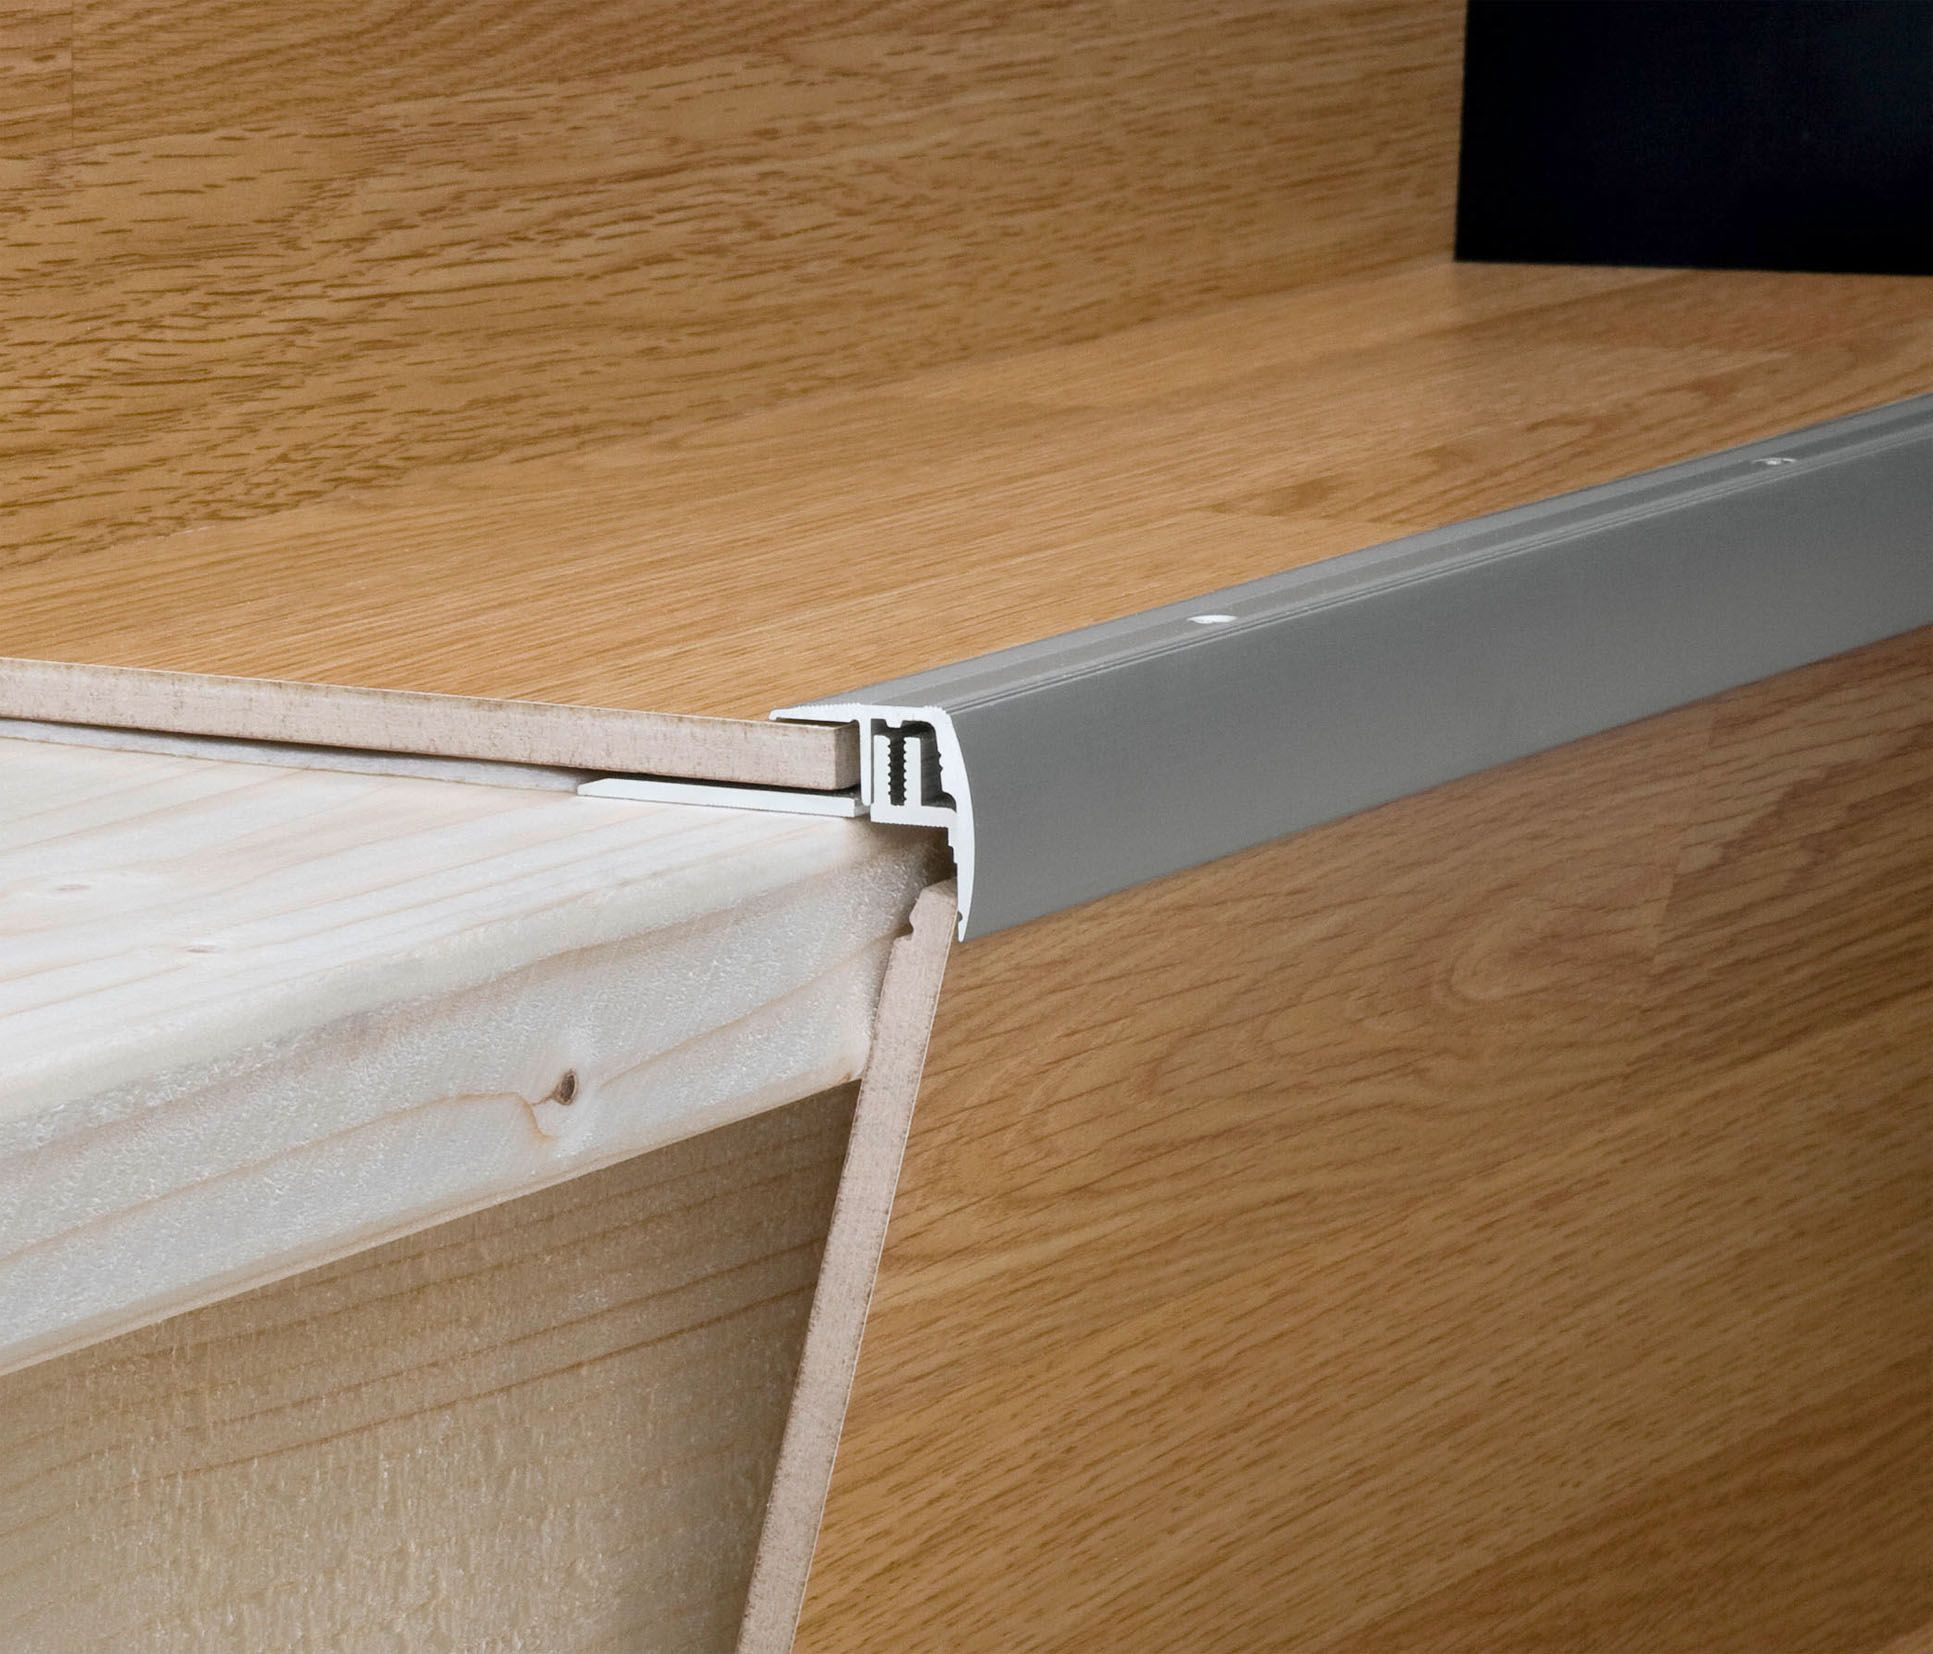 Beau Meister UK Universal Stair Nosings: To Protect The Laminate Joints At The Stair  Nosing.